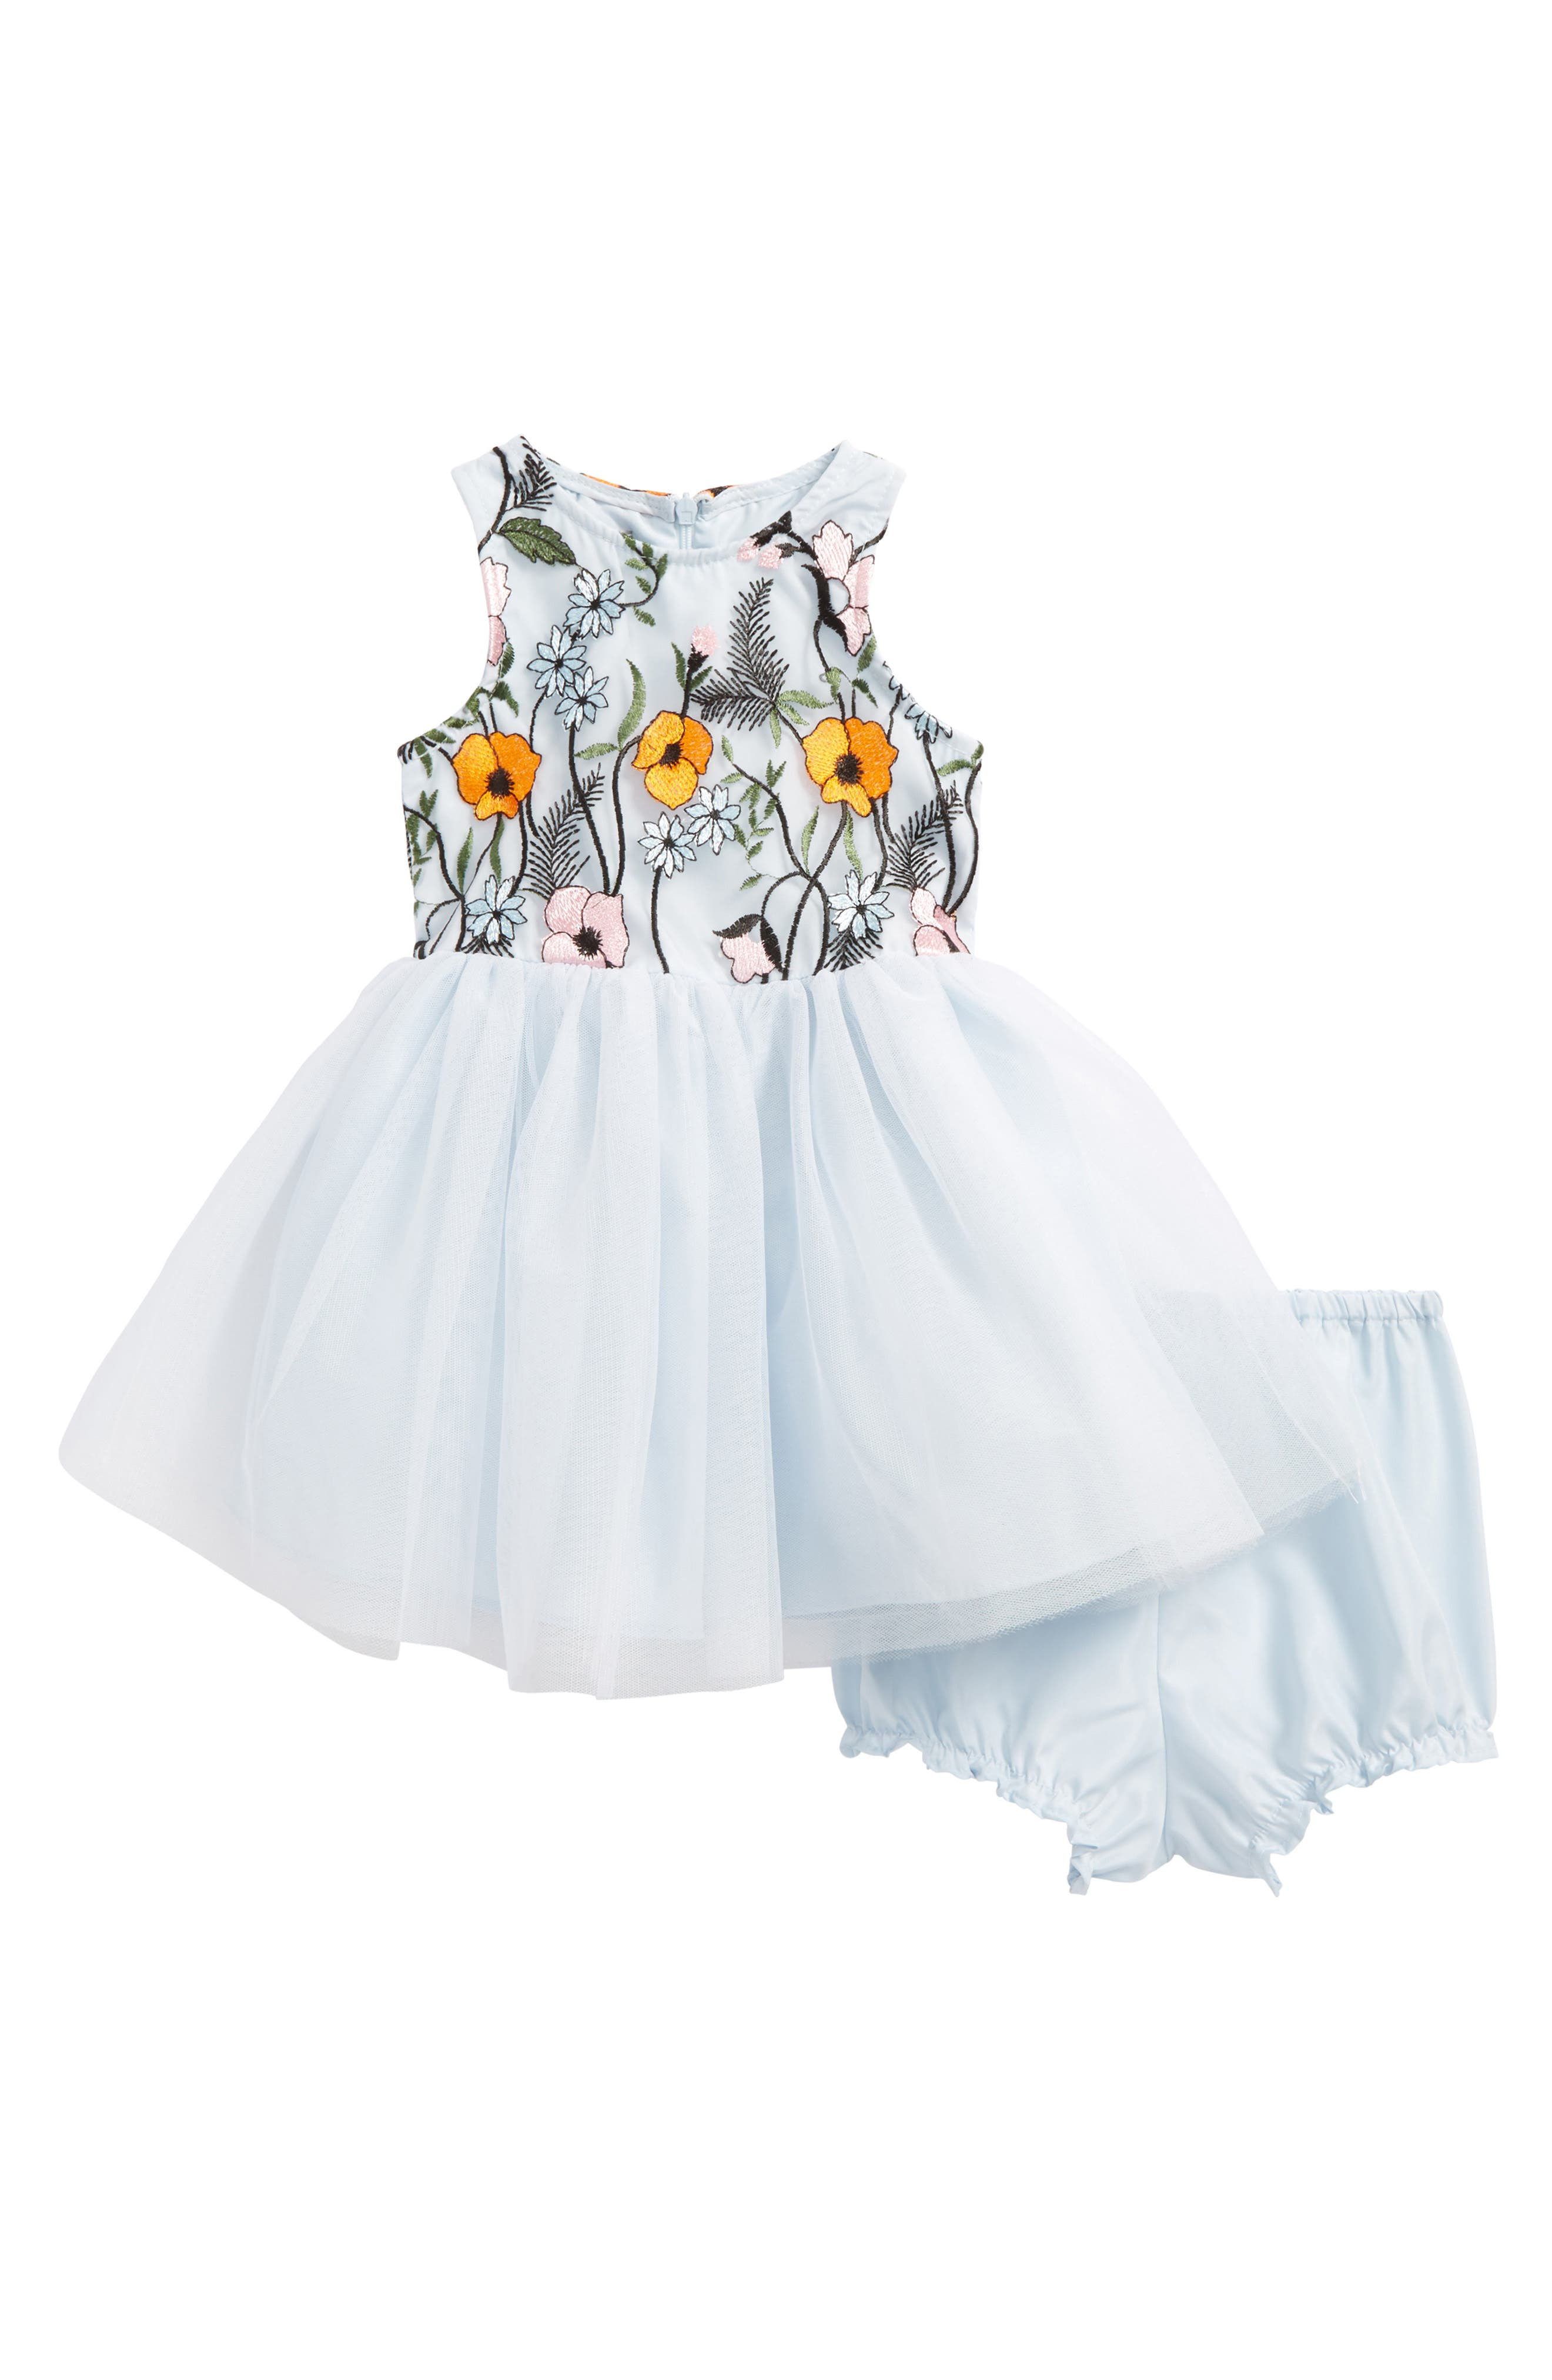 Main Image - Pippa & Julie Embroidered Floral Tulle Dress (Baby Girls)